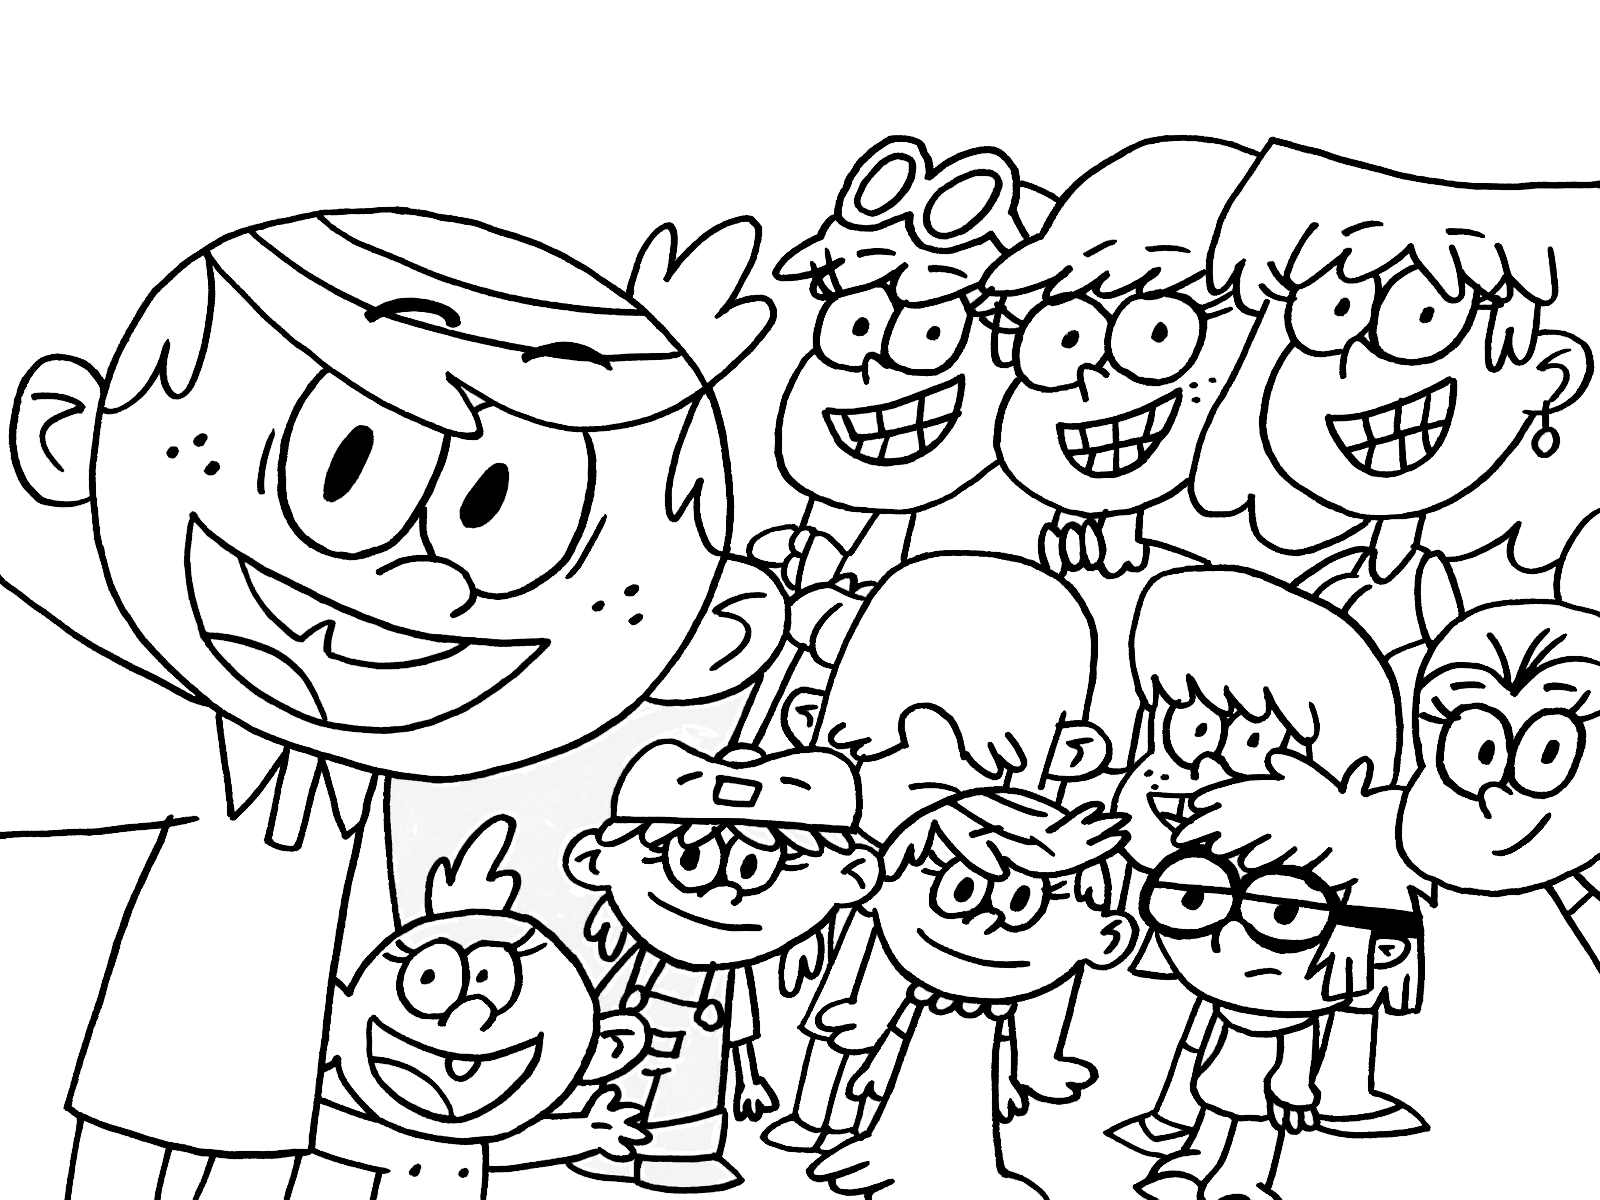 Image Result For The Loud House Coloring Pages House Colouring Pages Coloring Pages Coloring Sheets